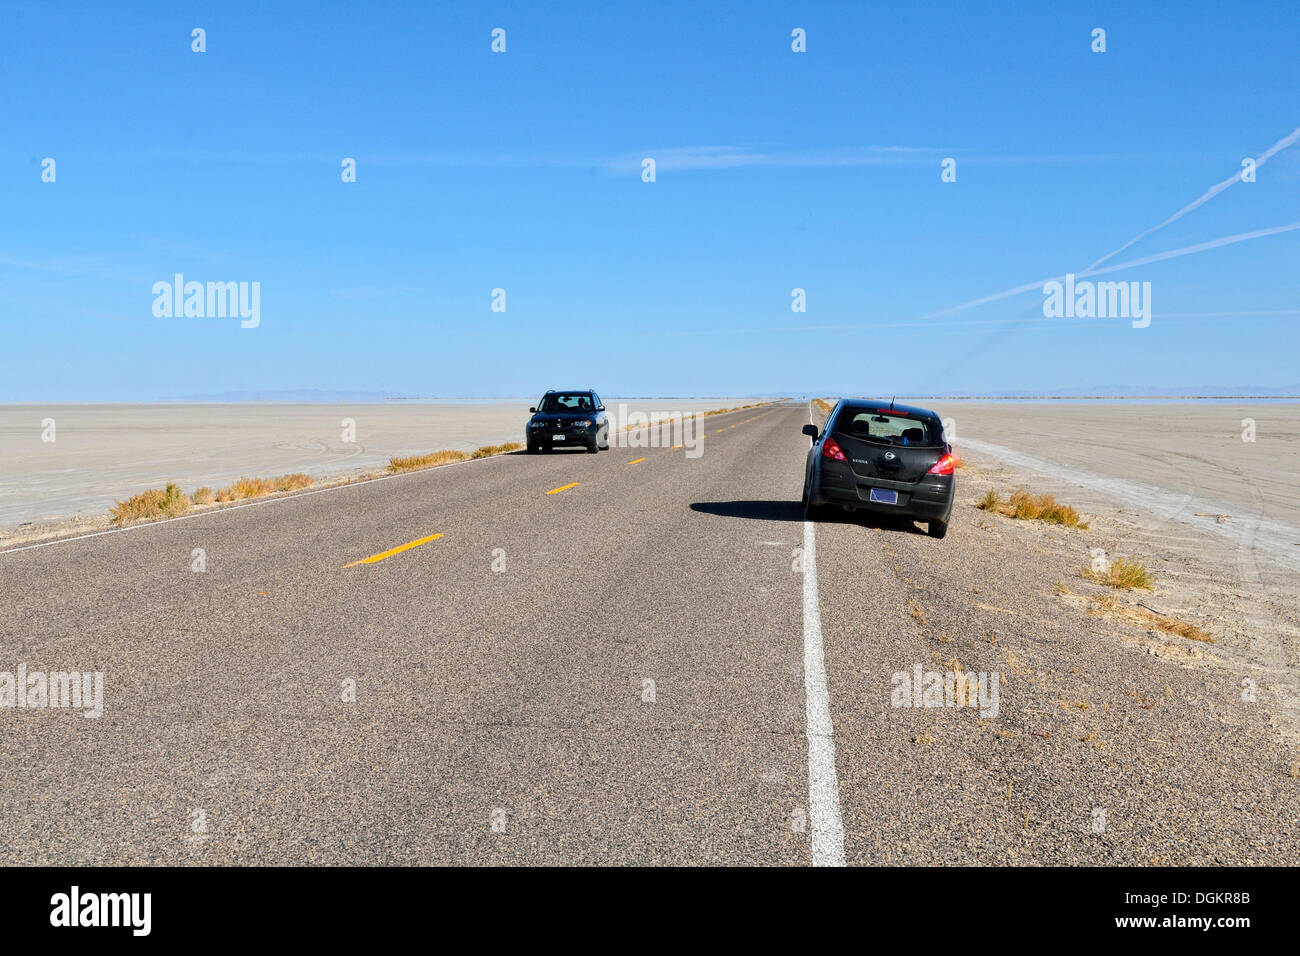 Access road to Bonneville Speedway, Great Salt Lake Desert, Wendover, Utah, USA - Stock Image